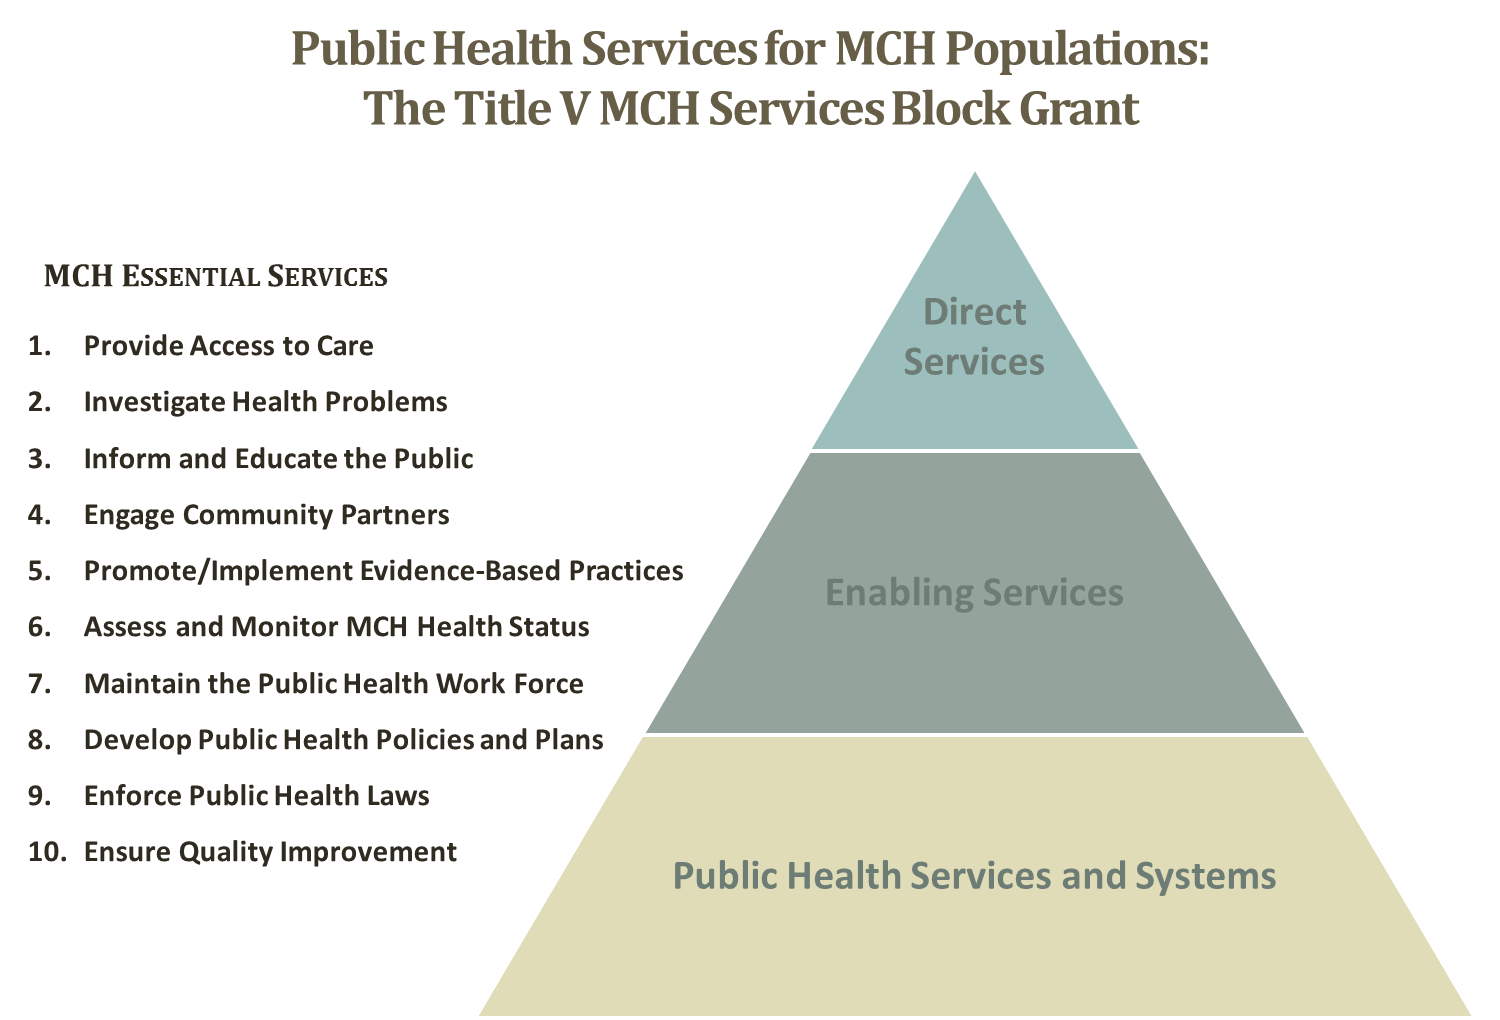 Public Health Services for MCH Populations